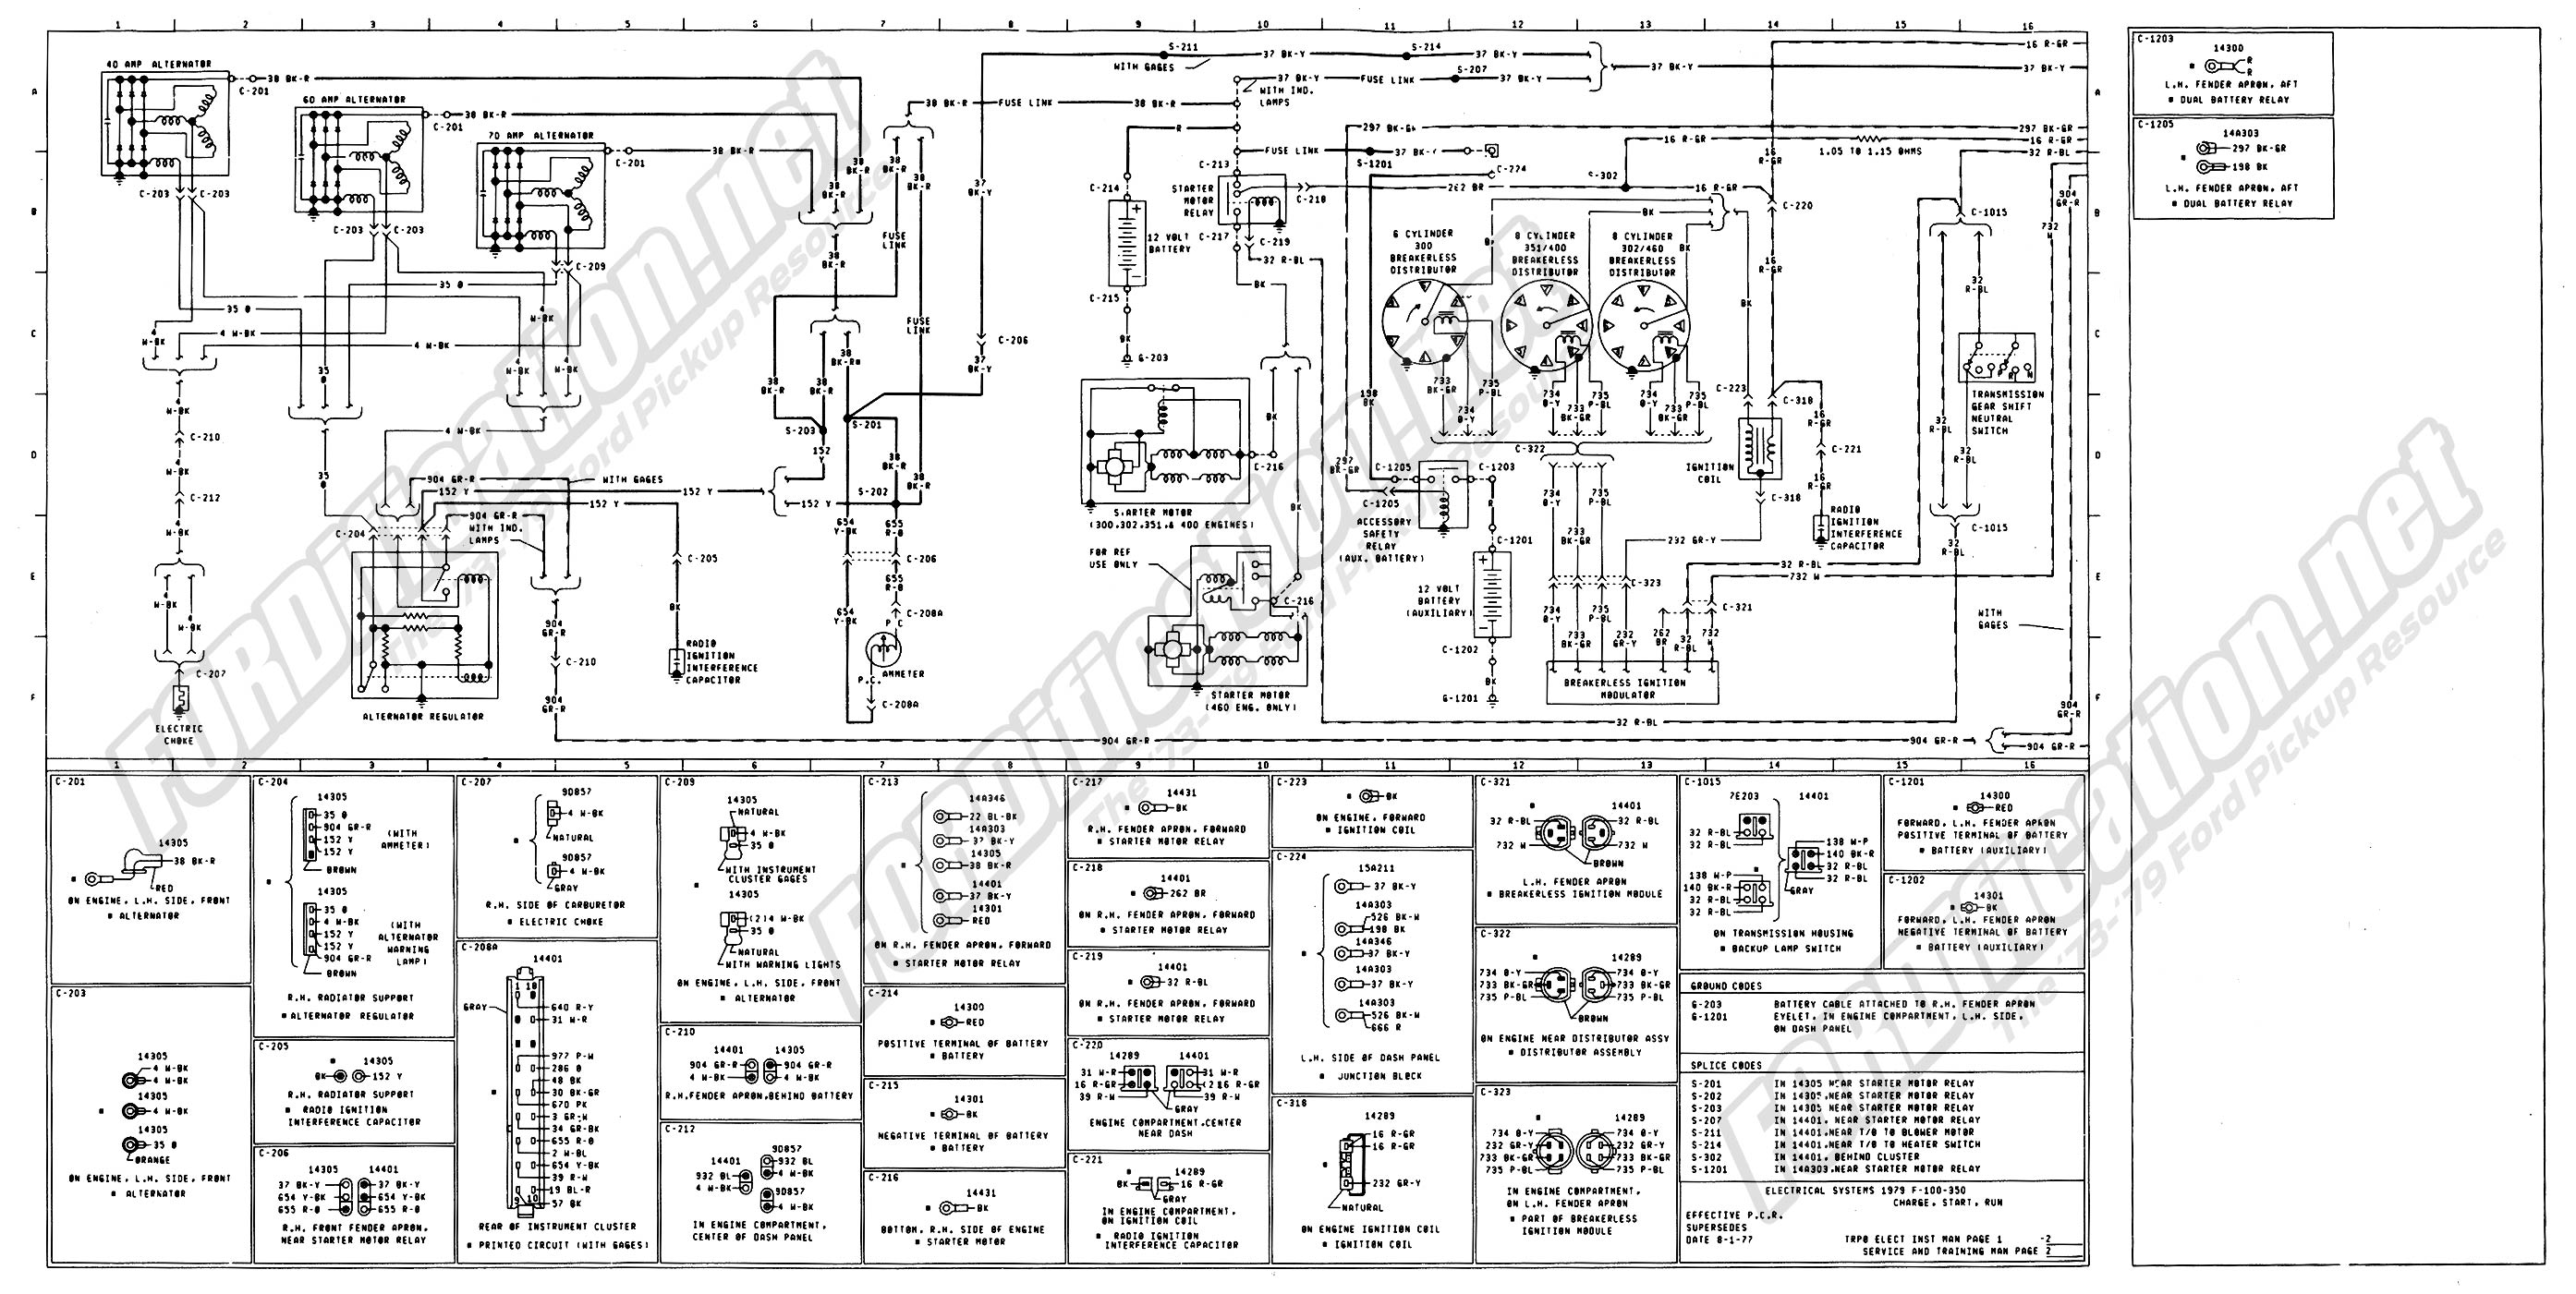 wiring_79master_2of9 1973 1979 ford truck wiring diagrams & schematics fordification net Ford 3 Wire Alternator Diagram at mifinder.co